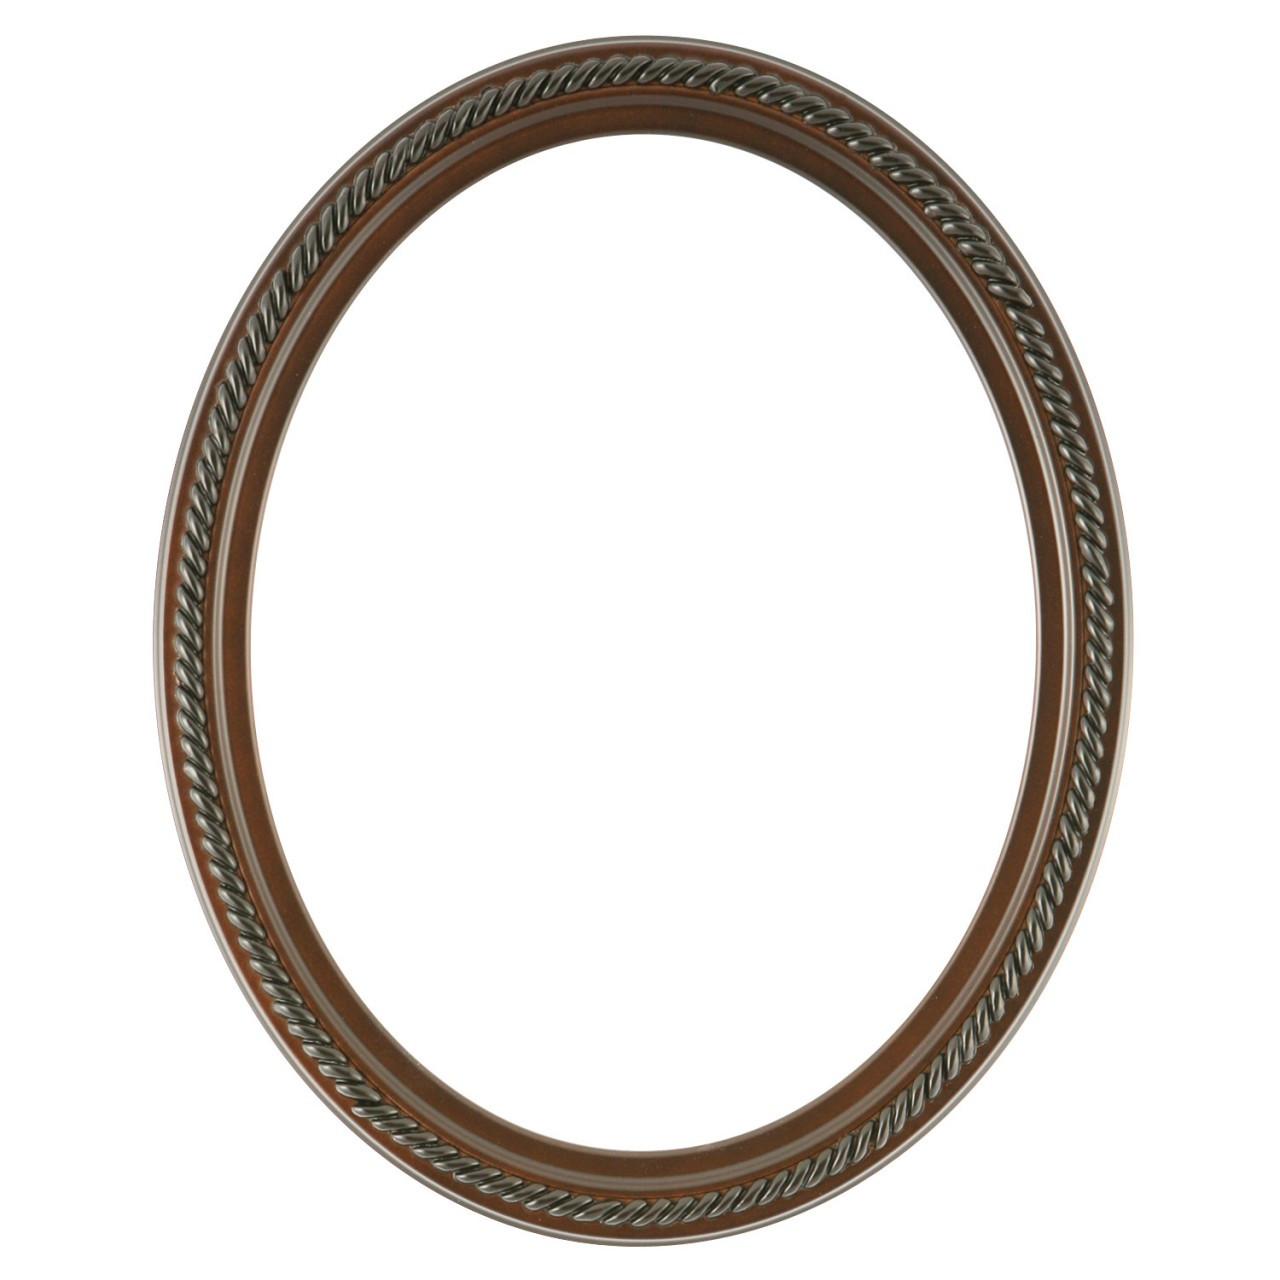 Oval Frame In Rosewood Finish Braided Rope Decals On